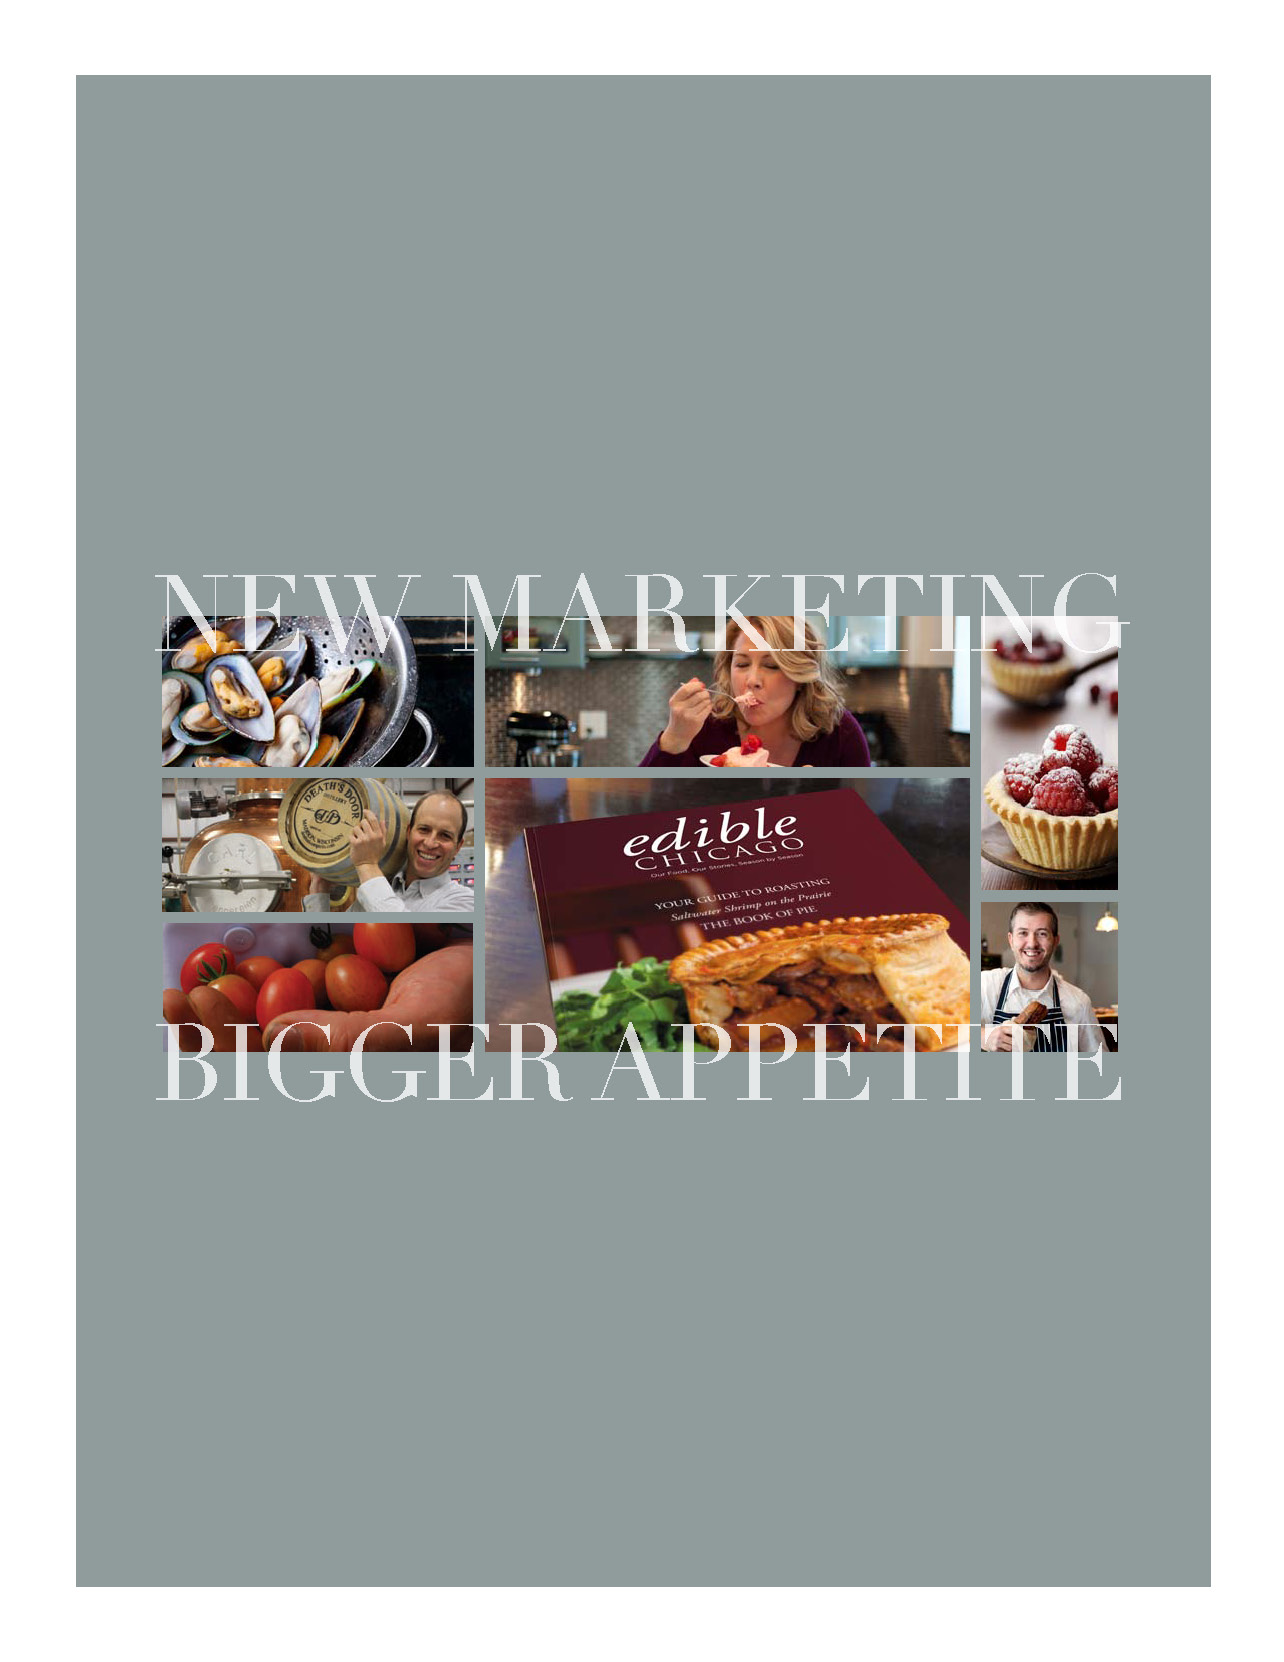 Edible Chicago 2014 Media Kit with Rate Card_Page_01.jpg